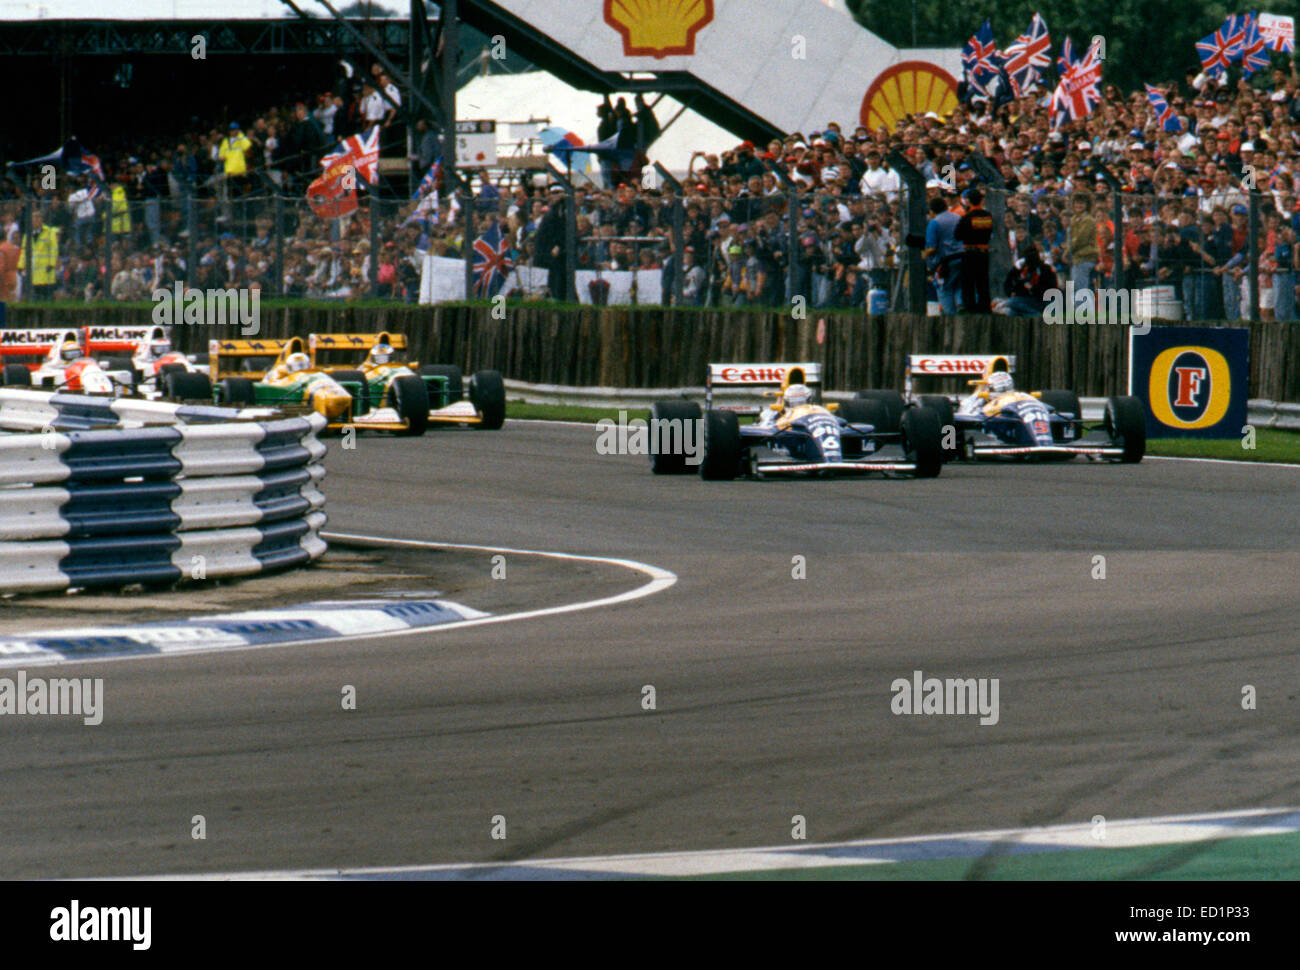 1992 British Grand Prix, Silverstone. Patrese leads Mansell in their Williams FW14B into Copse, 1st lap. - Stock Image